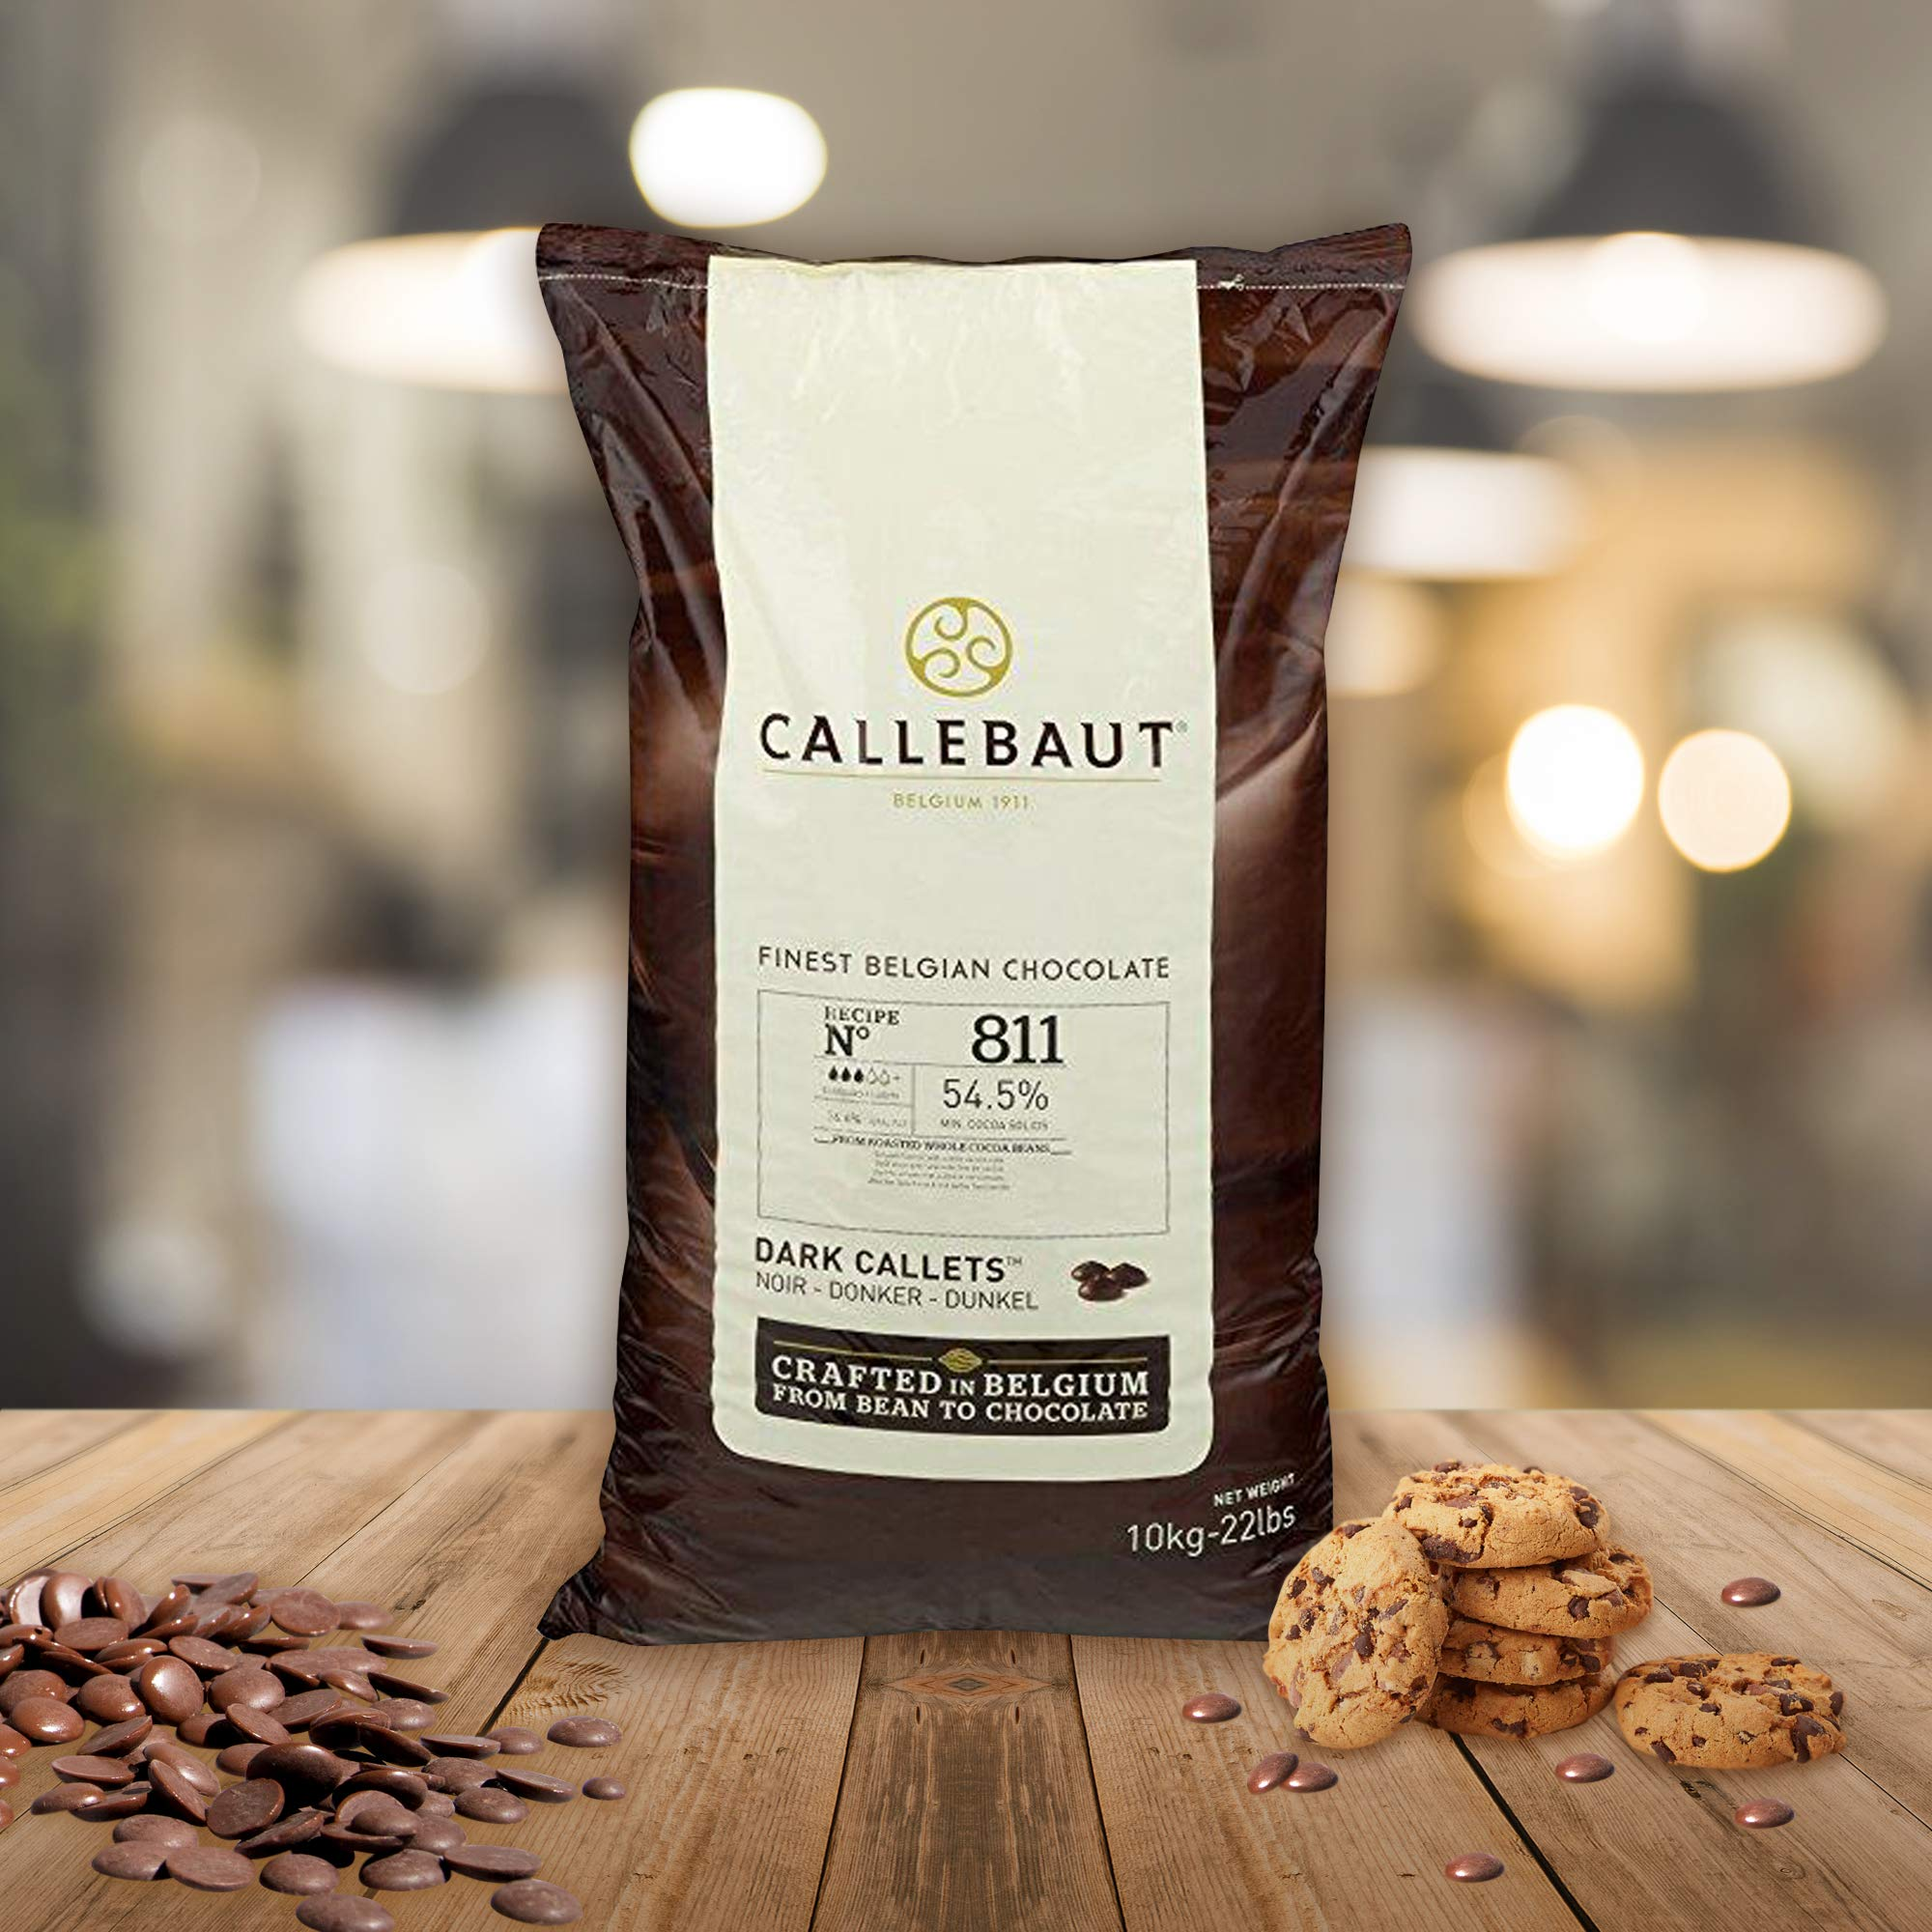 Belgian Dark Couverture Chocolate Semisweet Callets, 54.5% - 2 Pack - 2 x 5.5 Lbs (2 pack) (2 bags, 2x5.5 lbs) by Callebaut (Image #2)